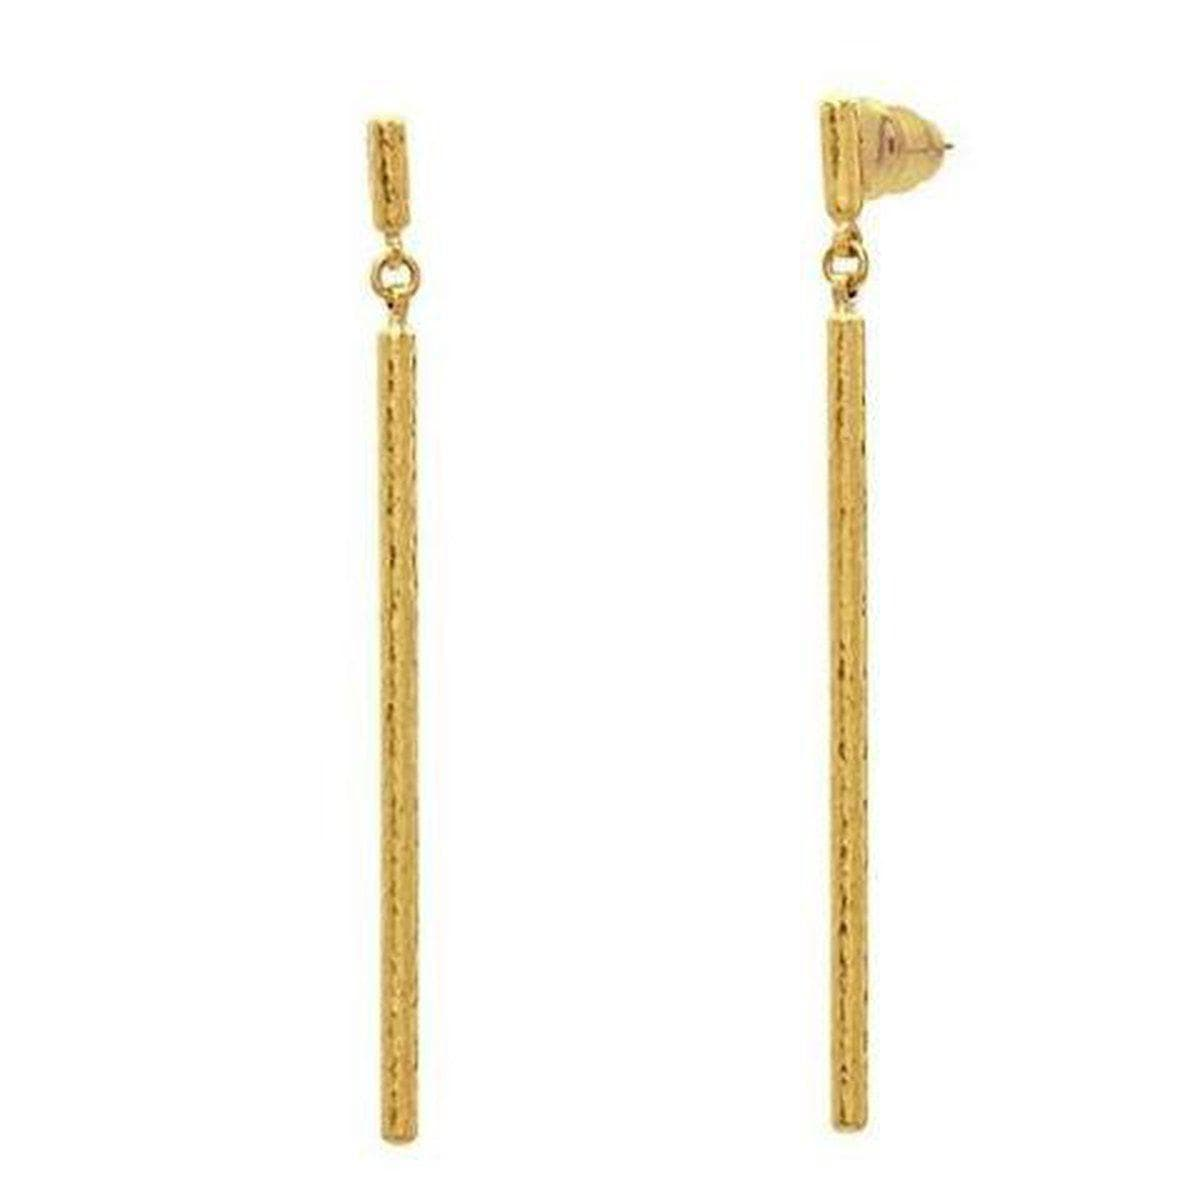 Vertigo 24K Gold Earrings - NVE-VB-50-SD-GURHAN-Renee Taylor Gallery